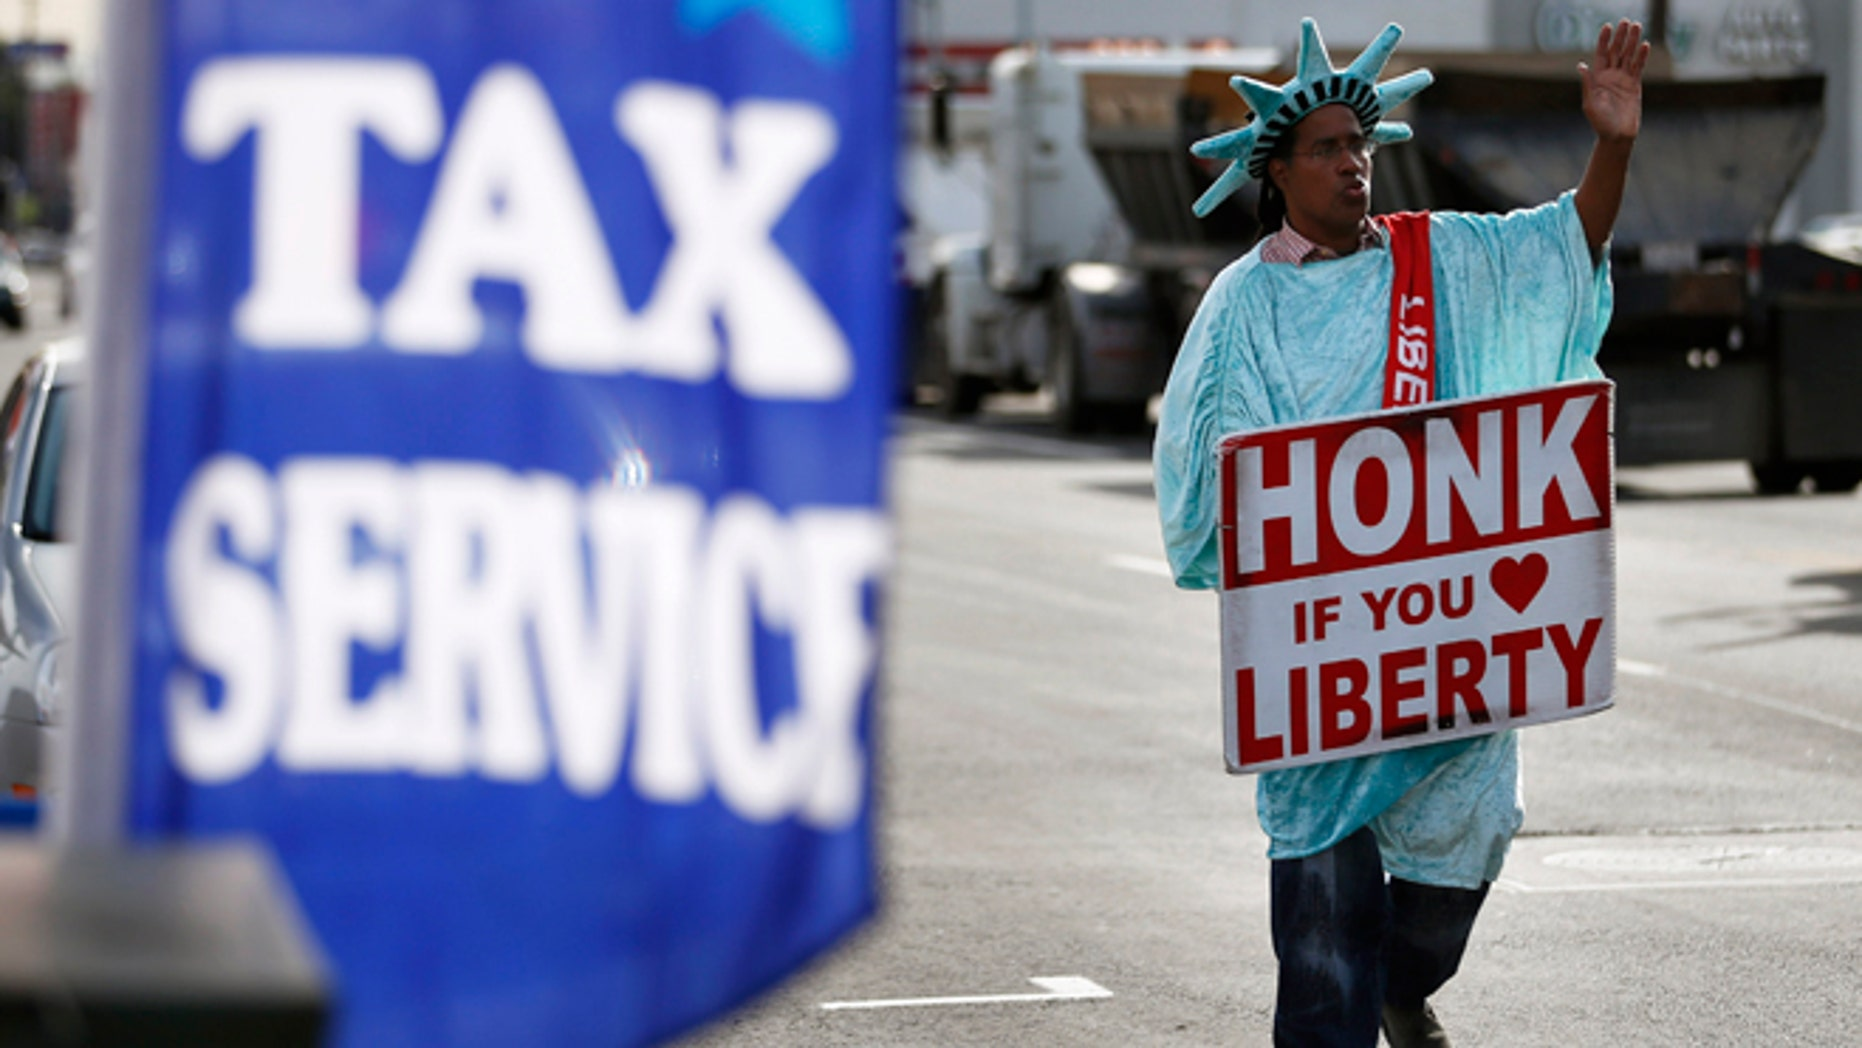 Jan. 22, 2013: Dressed as the Statue of Liberty, part-time employee, Zidkijah Zabad, waves to passing motorists while holding a sign to advertise for Liberty Tax Service in Los Angeles.